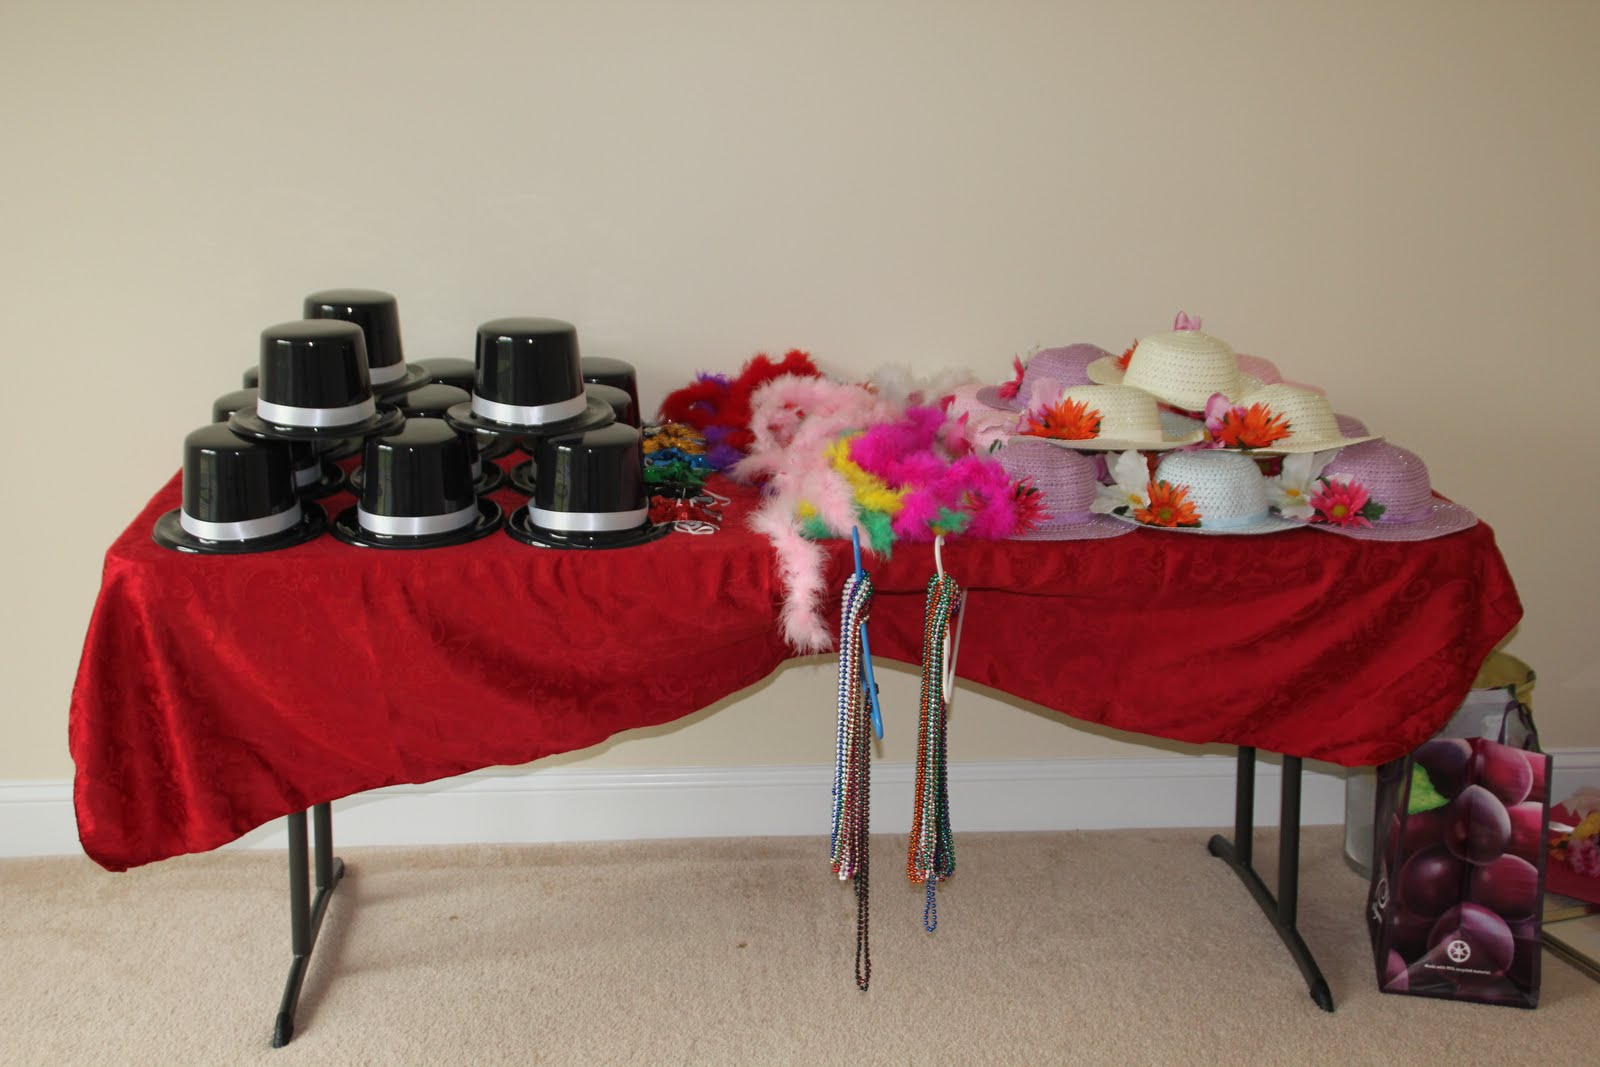 Kids tea party table - When The Little Kids Got To The Party The Boys Got A Hat And A Bow Tie The Girls Picked Out A Hat Little Fluffy Necklaces Beads And Had Their Make Up